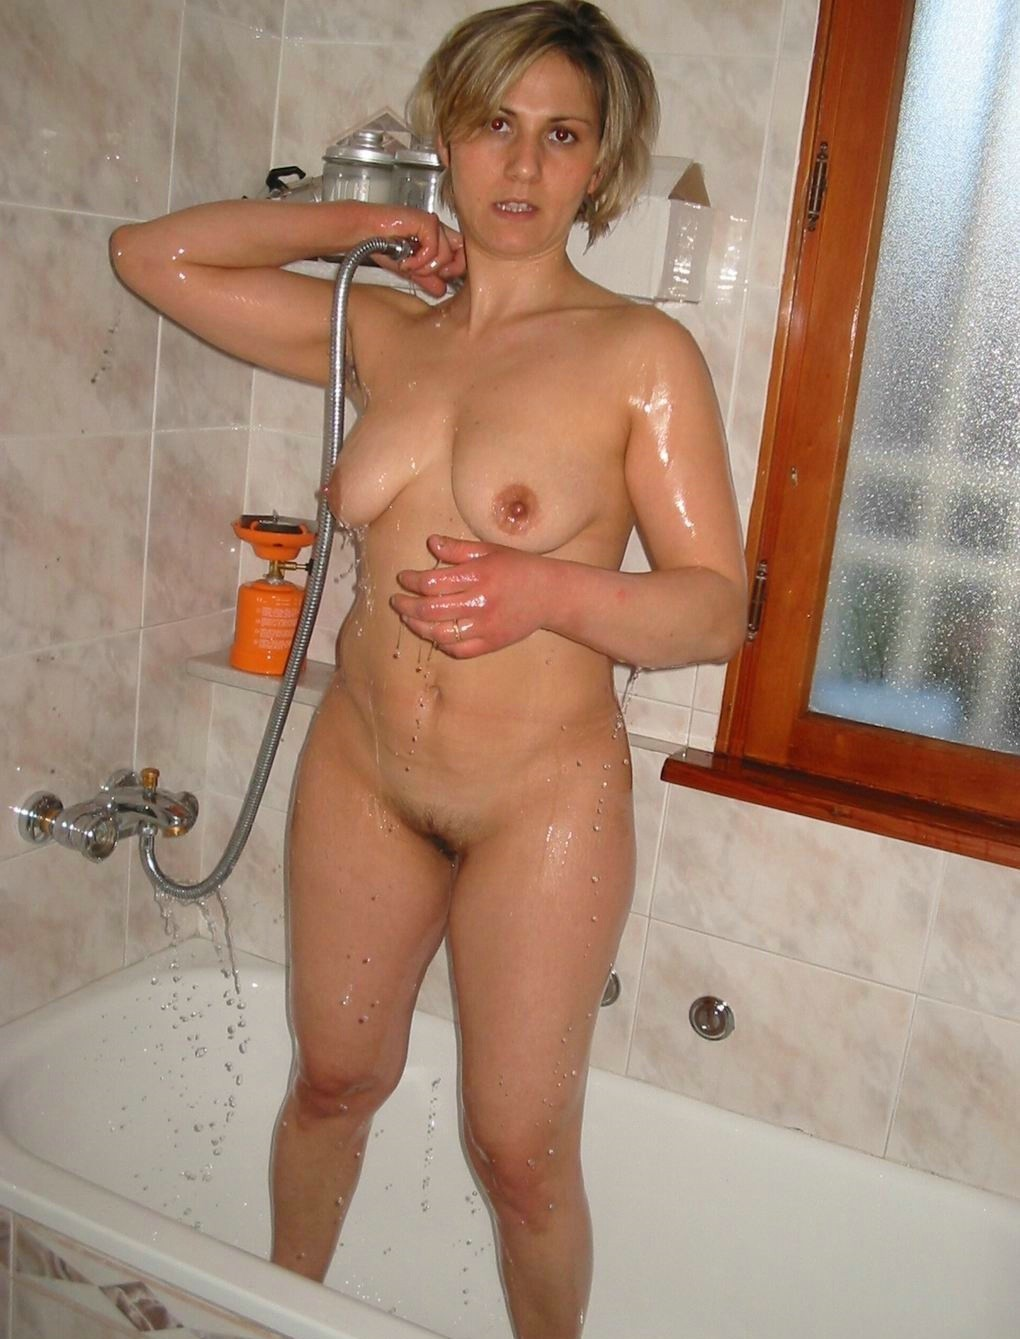 Hot milf caught nude #1